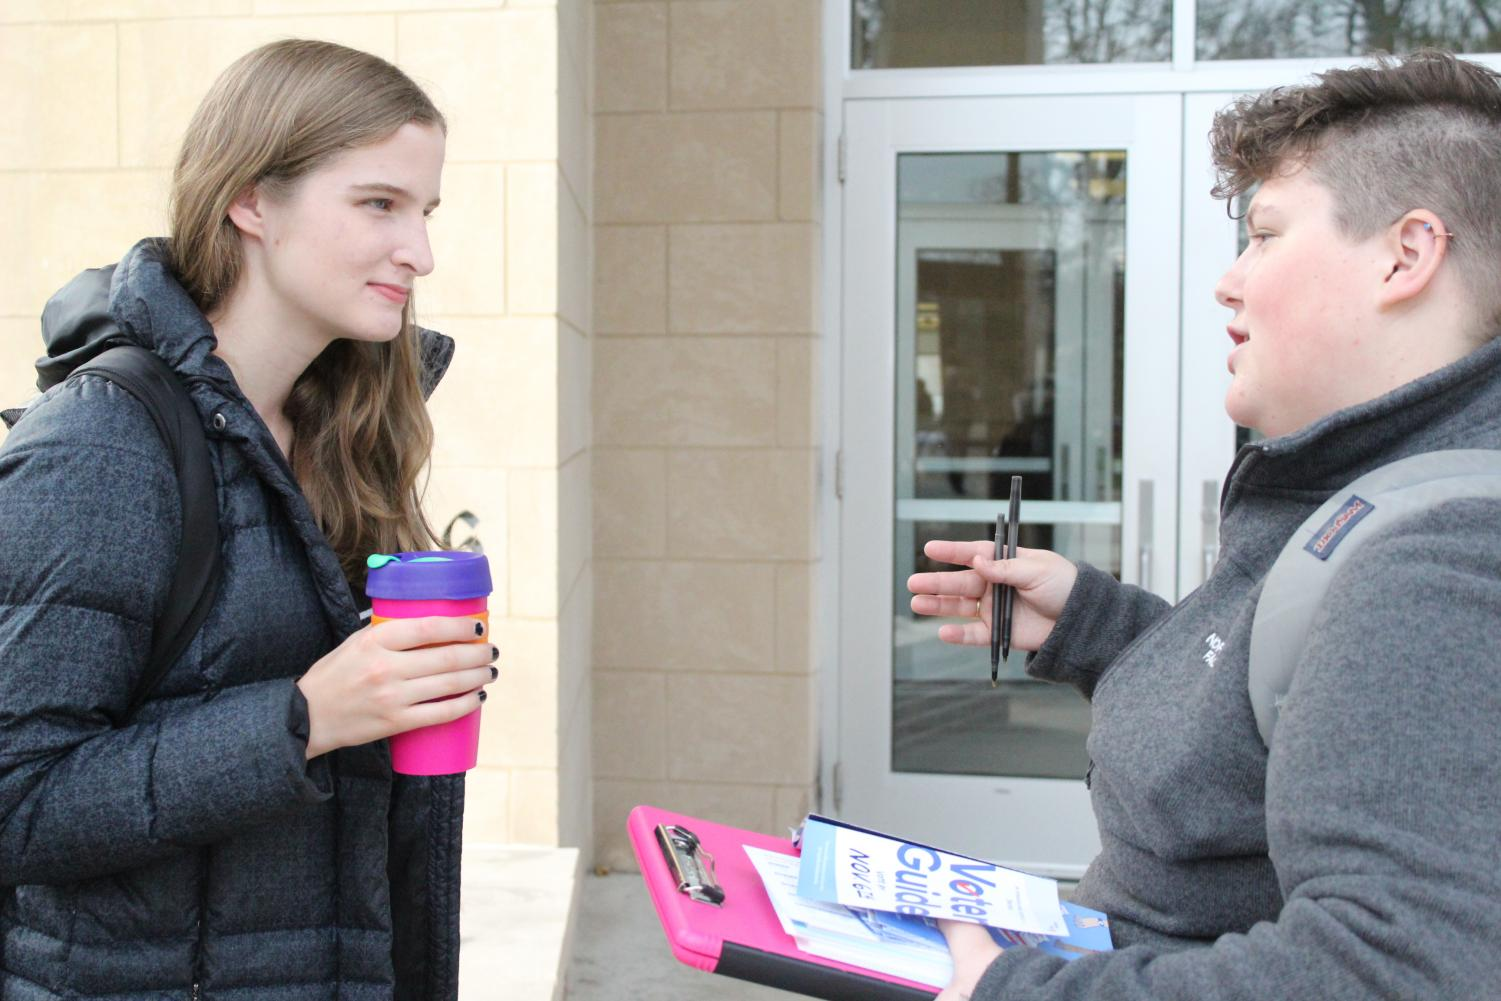 Laura Duffield ('21) stopped to listen to Sarah Wyatt ('20) provide information on the candidates.